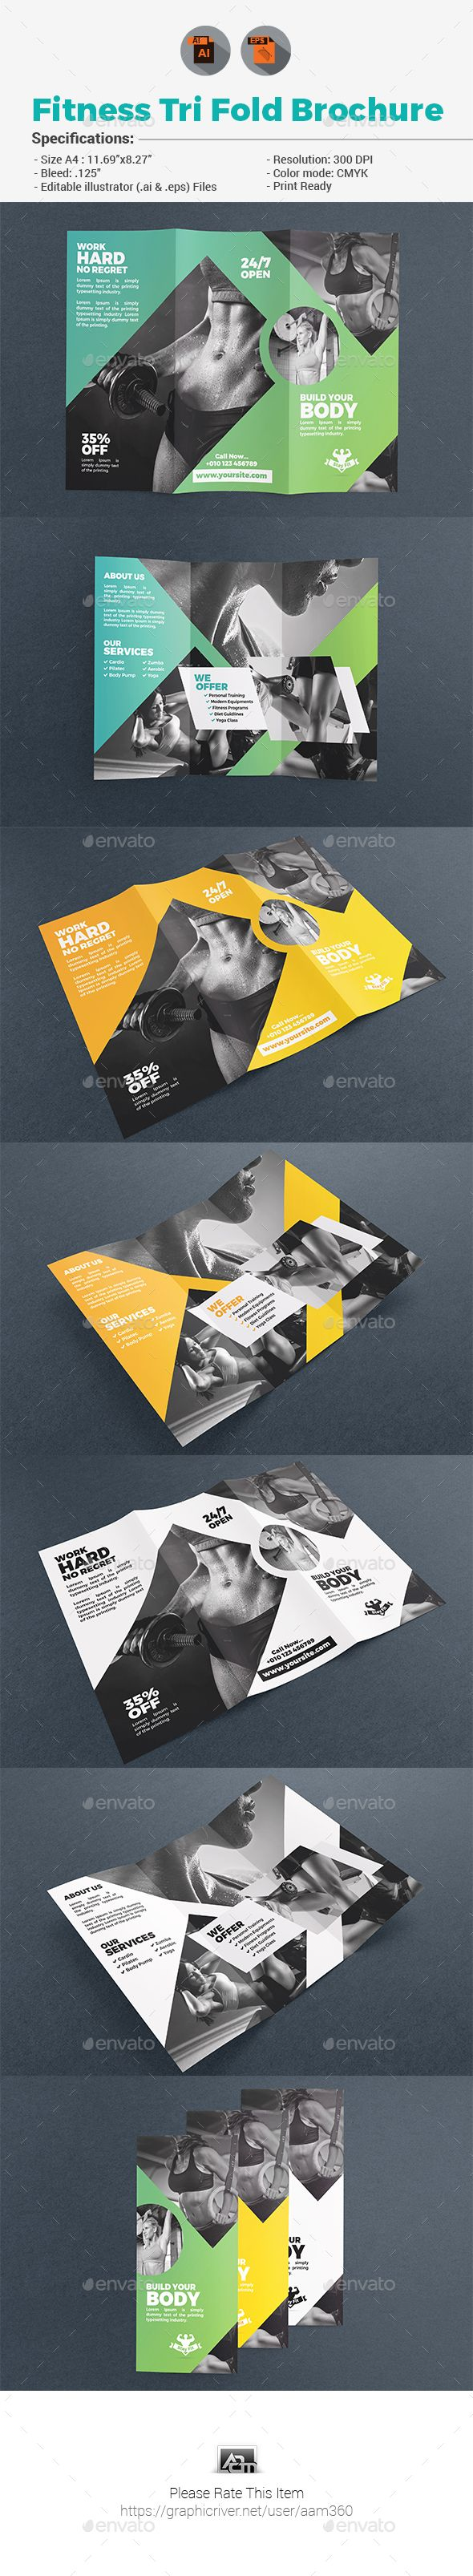 Fitness Tri Fold Brochure  Tri Fold Brochure Tri Fold And Brochures